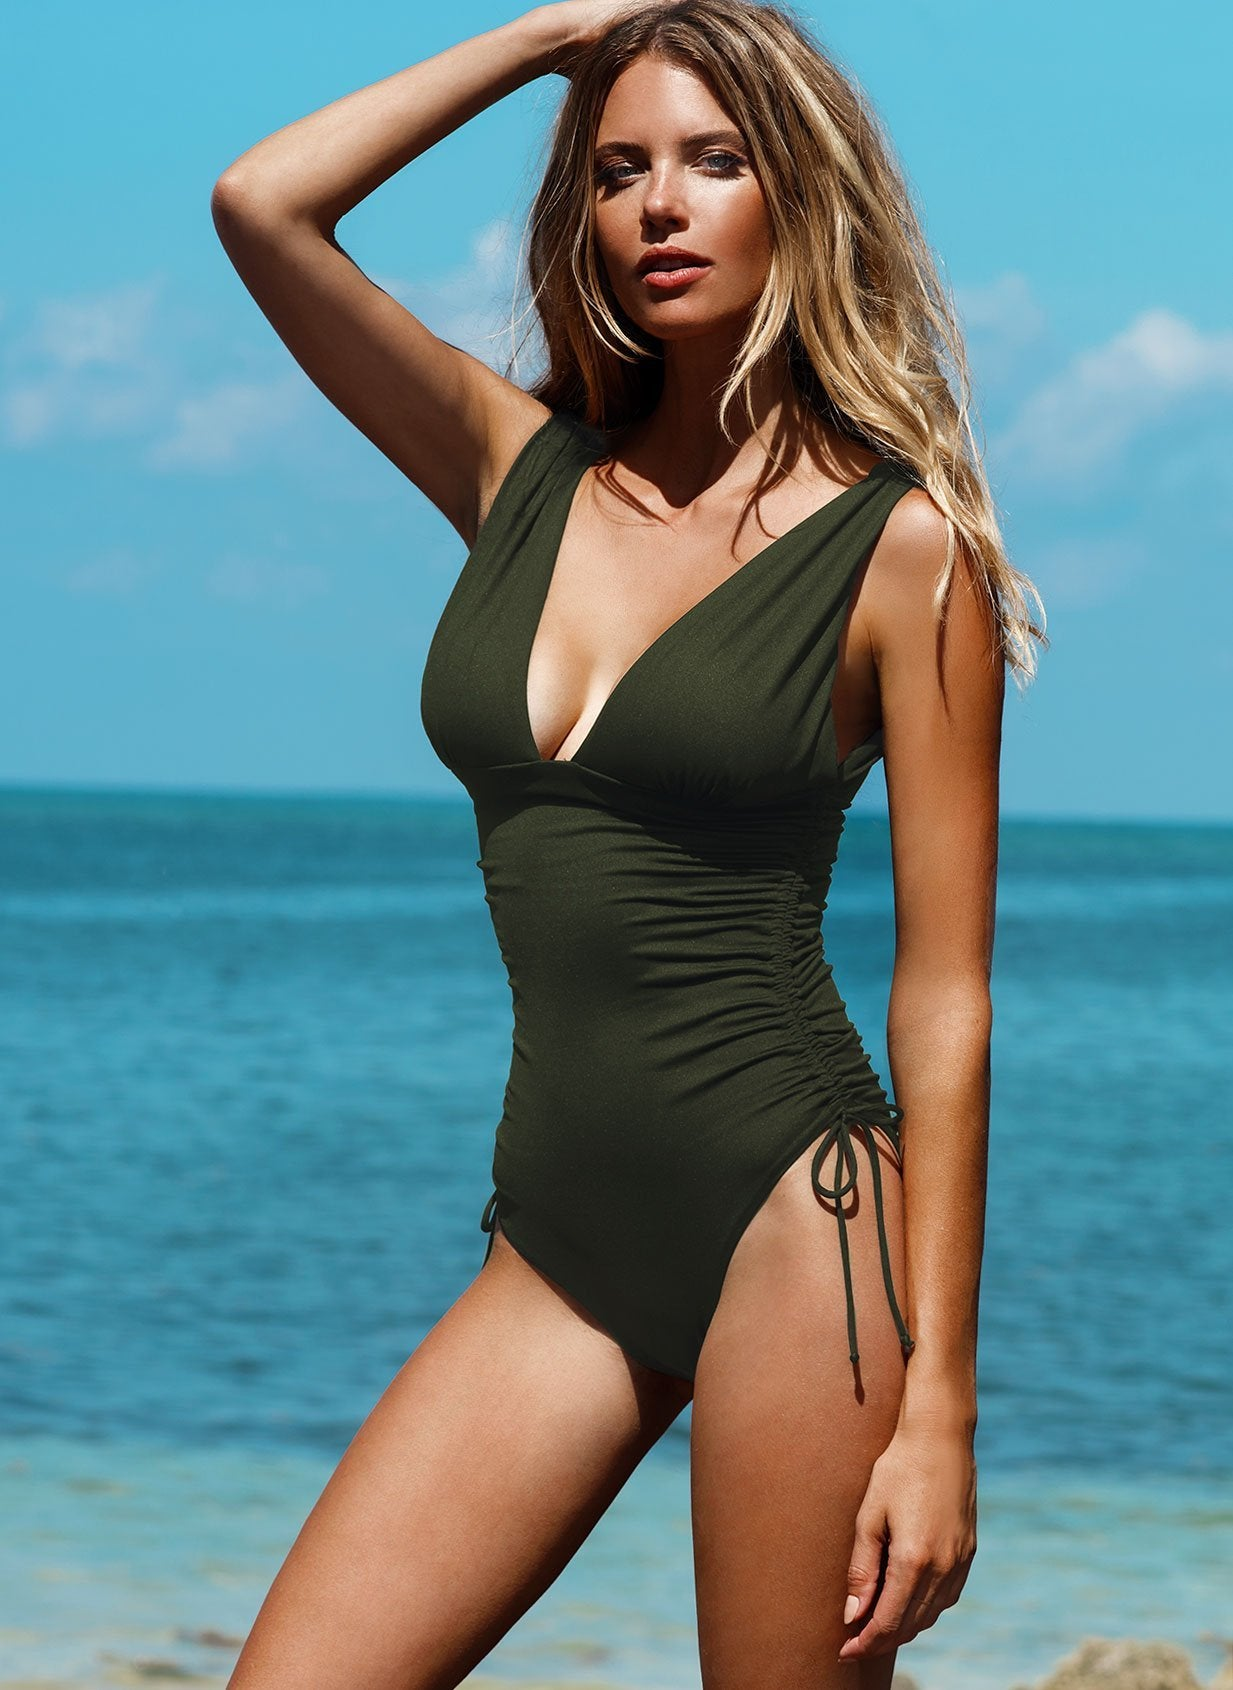 Chile Olive Swimsuit Lifestyle